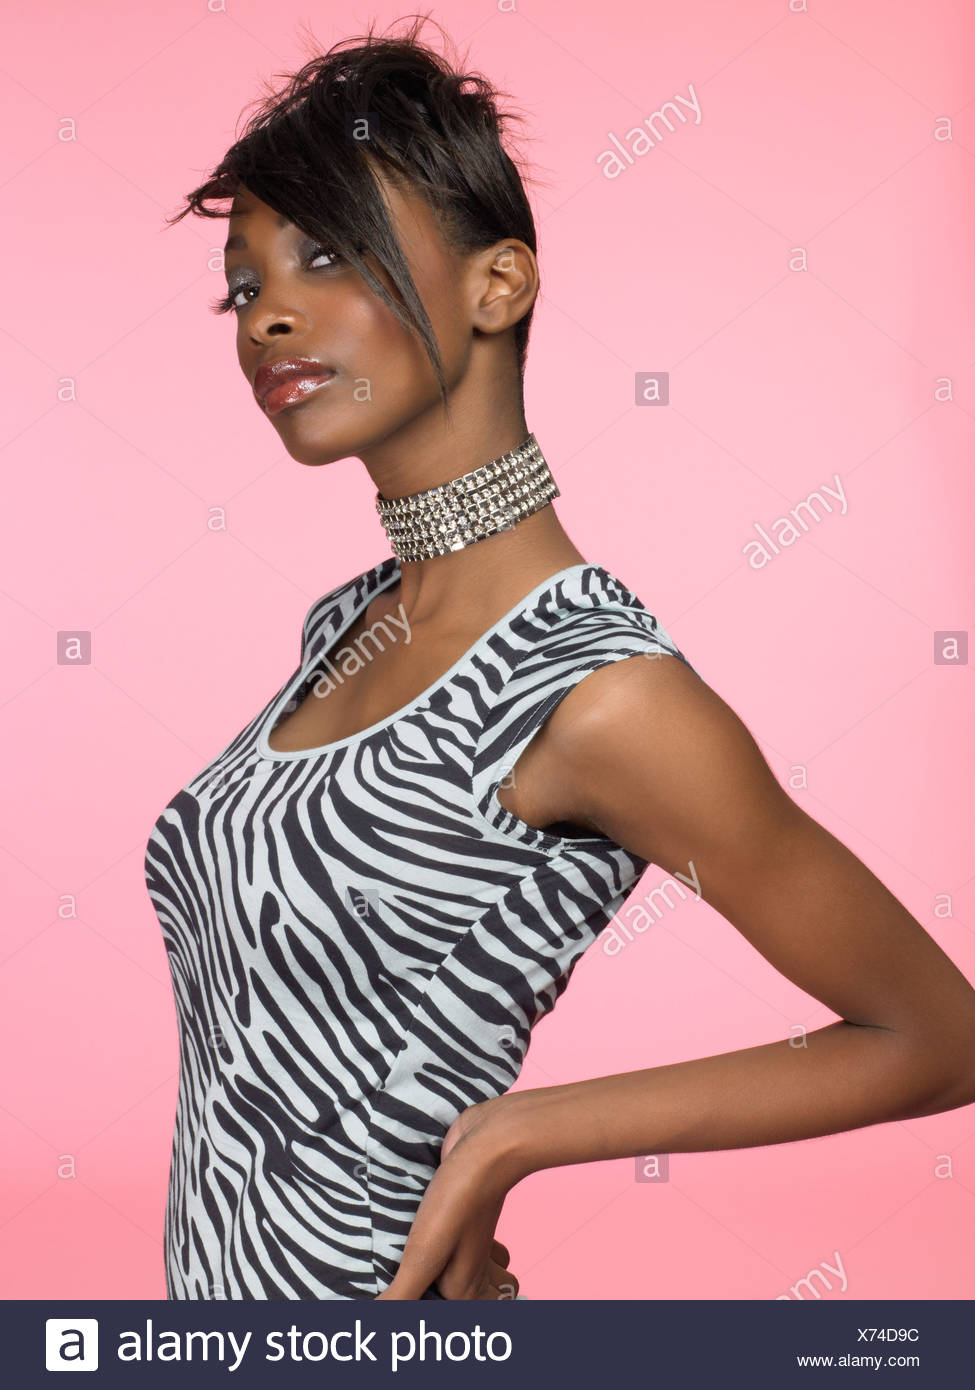 Portrait of a stylish young woman - Stock Image